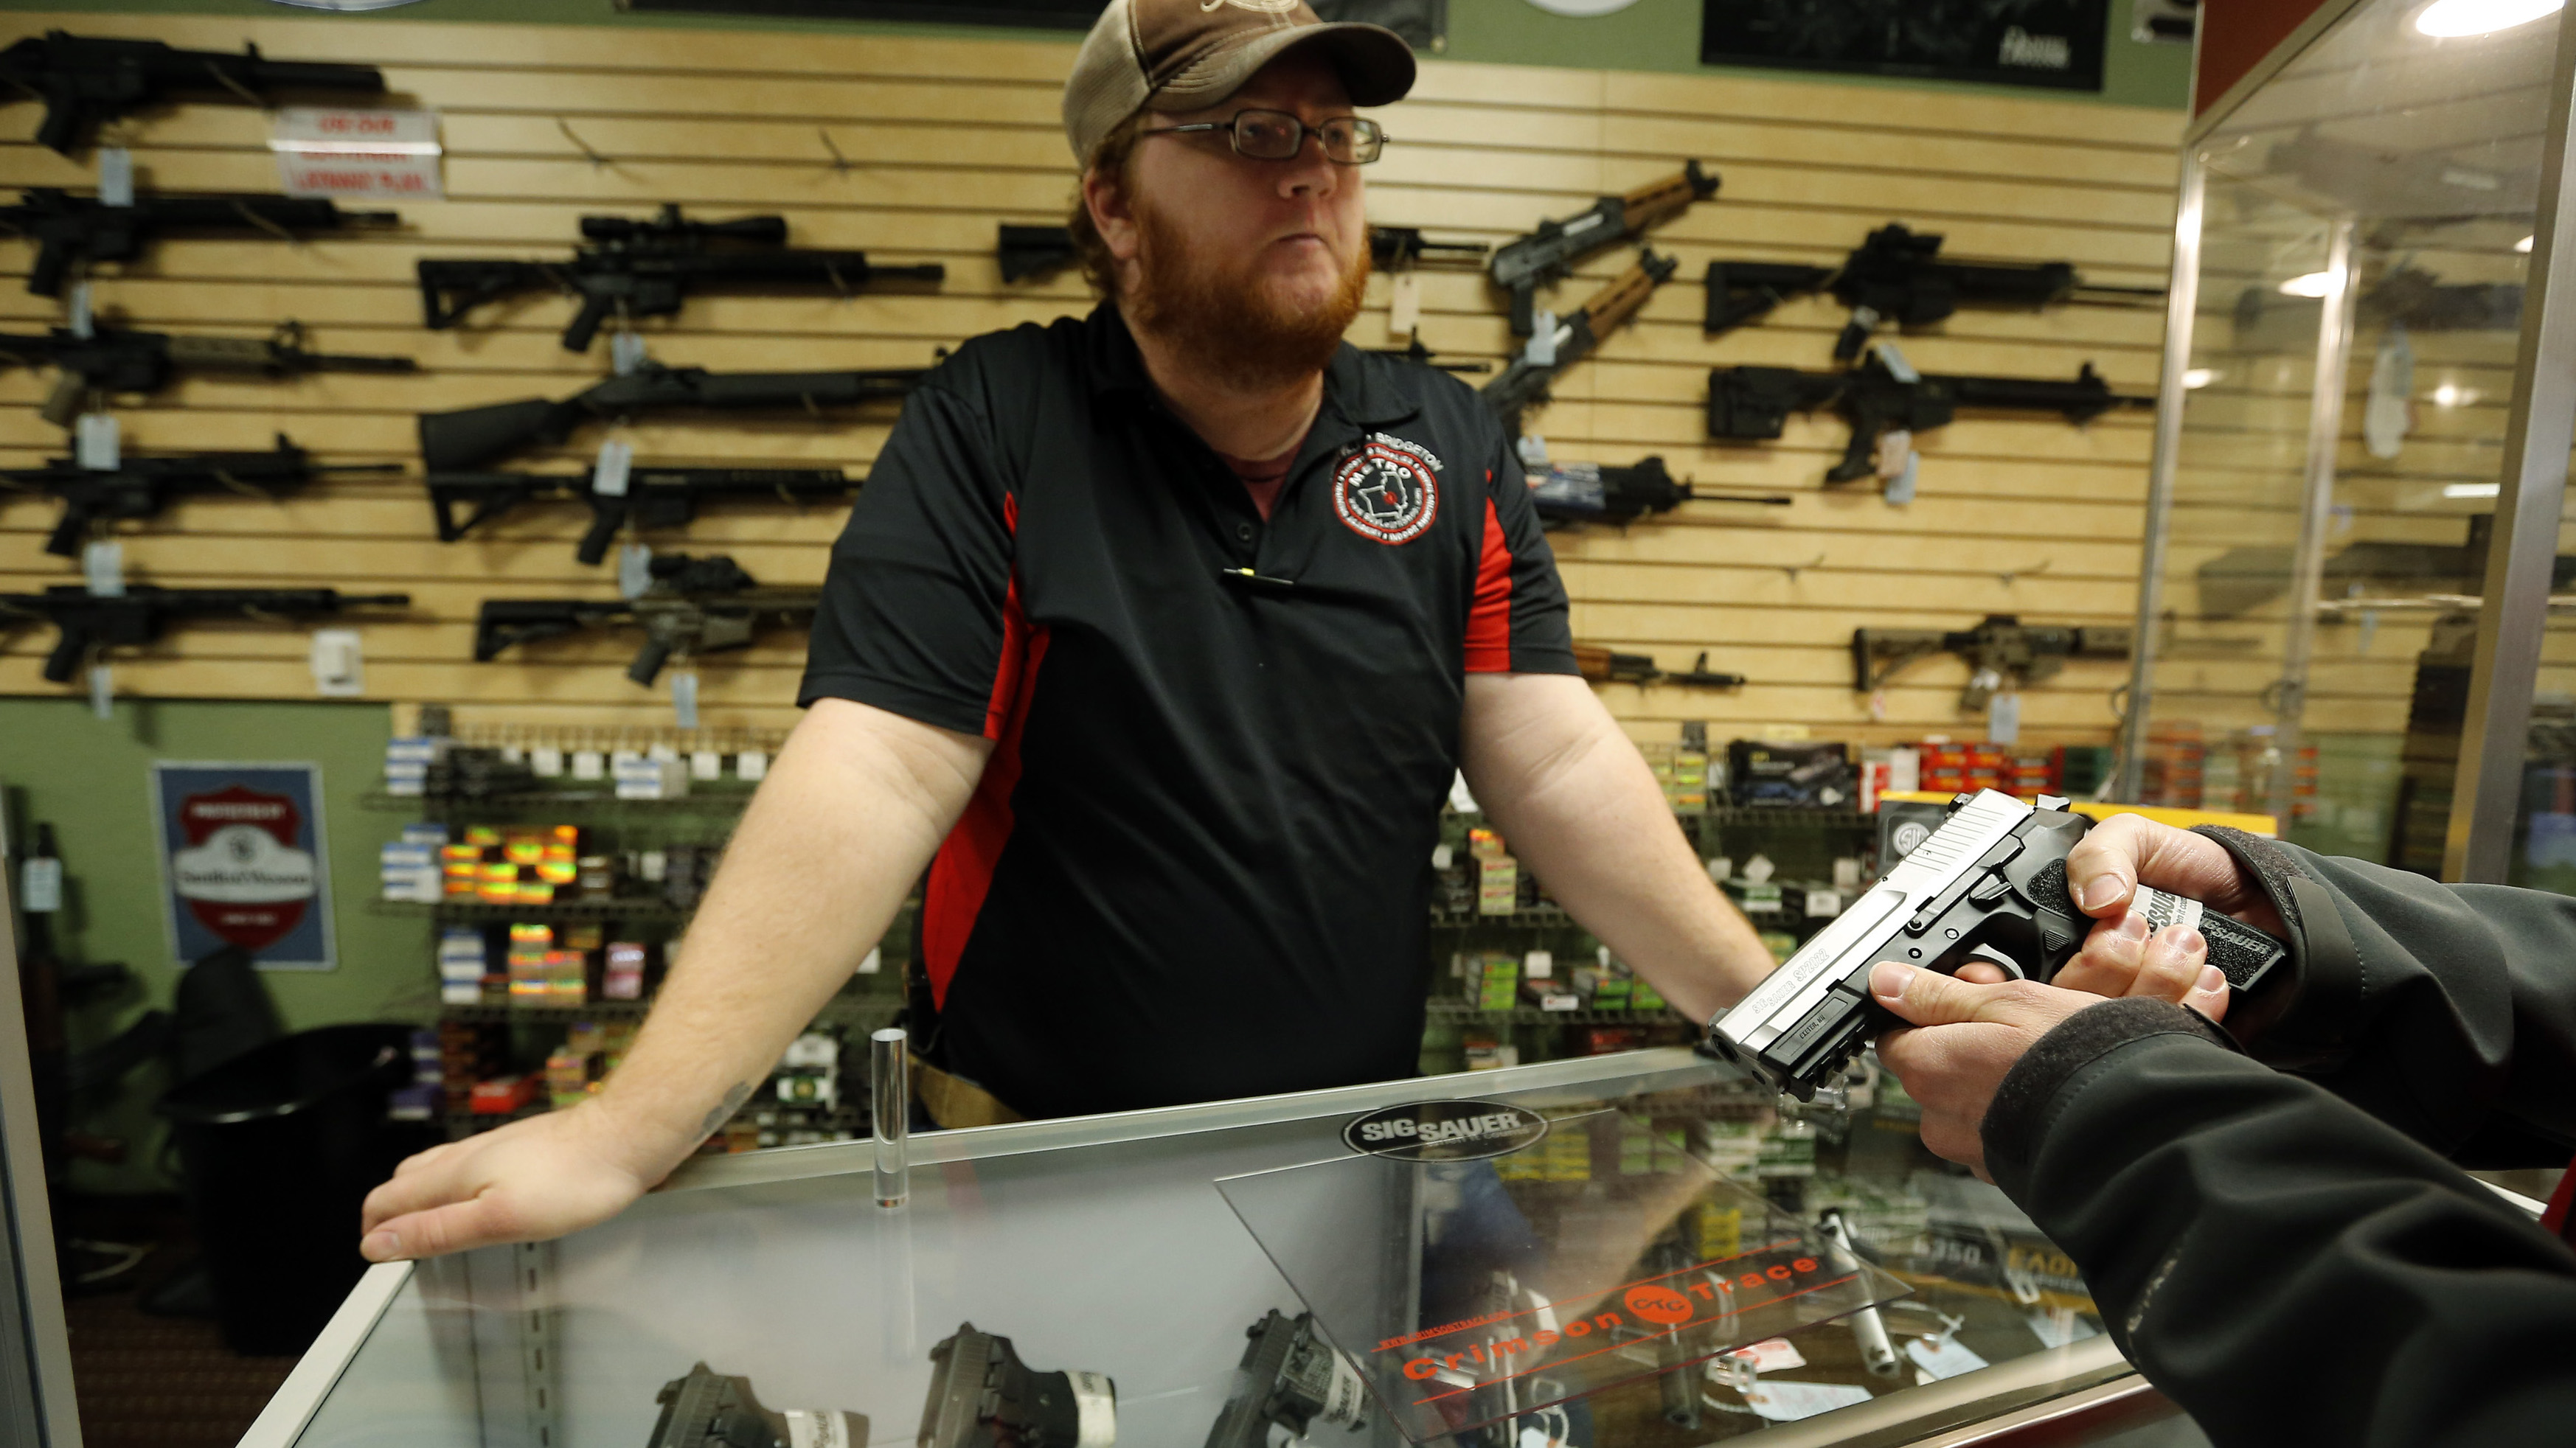 How to Buy a Gun in Missouri forecasting